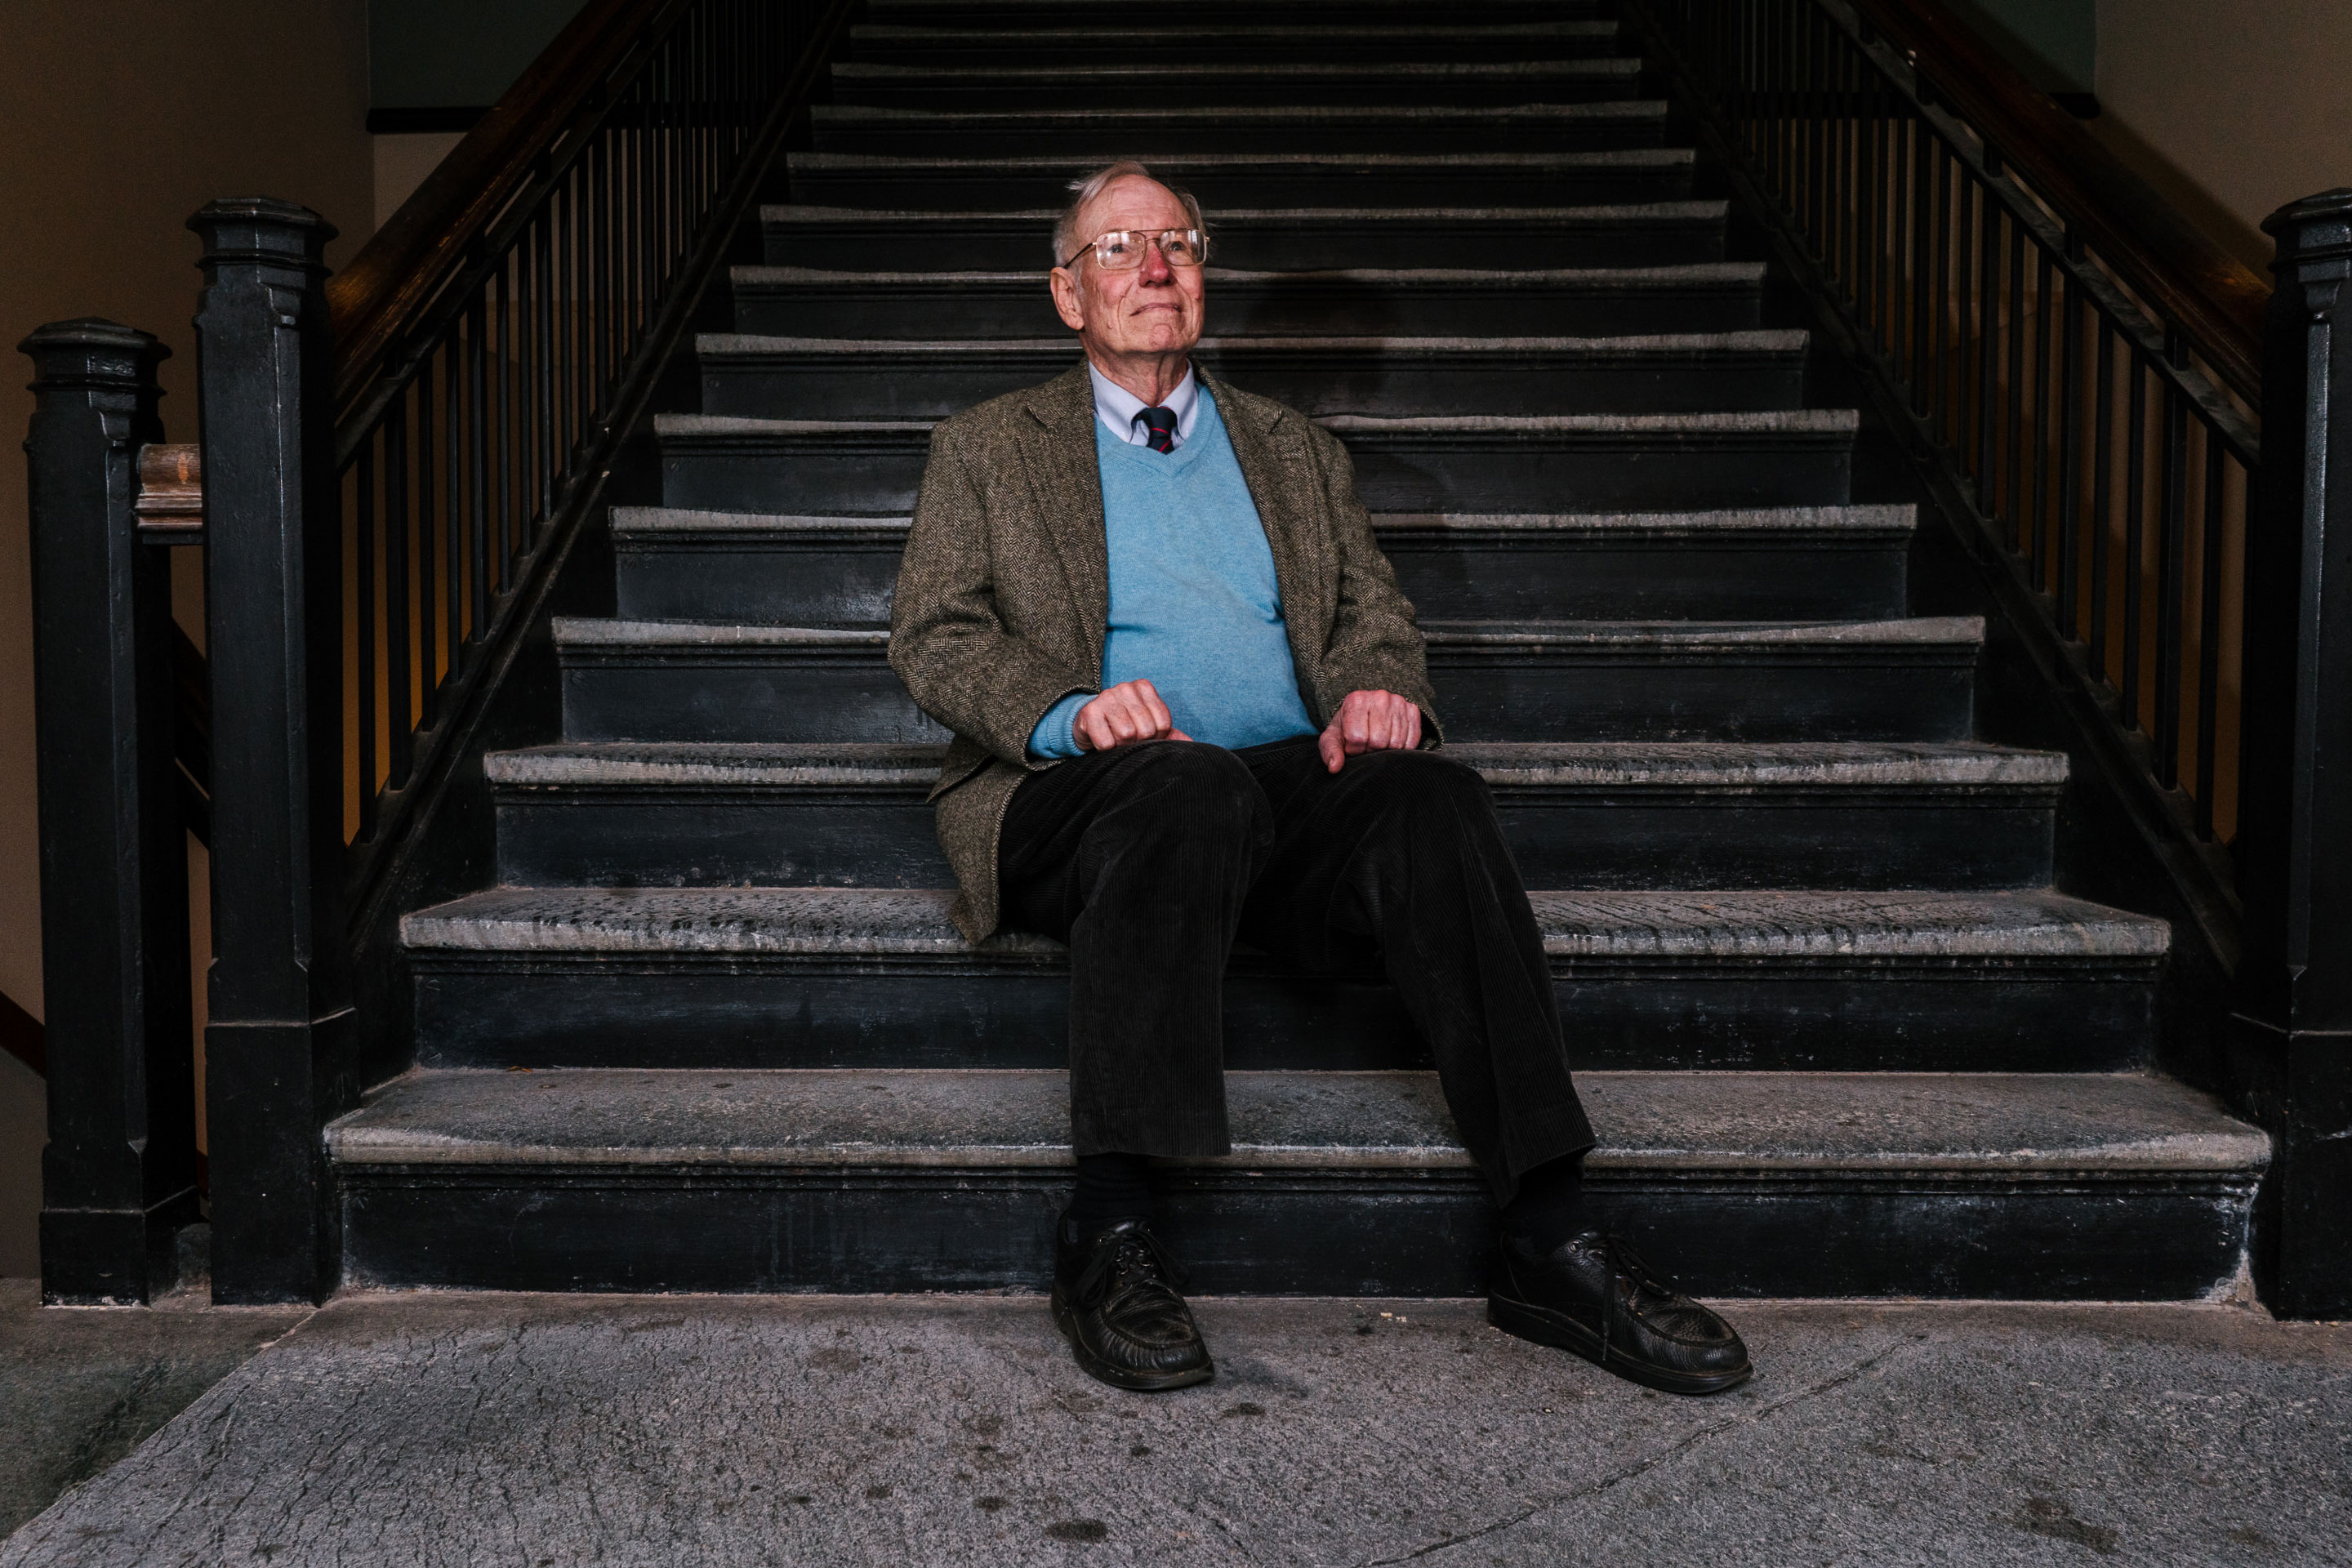 Dr. Jason Morgan, a geophysicist, poses for a portrait in Guyot Hall, home of the geosciences department at Princeton University. He has since retired and moved to Boston, where he is a visiting scholar at Harvard. The steps in the stairwell are made of Serpentine rock, which is formed in the Earth's mantle.